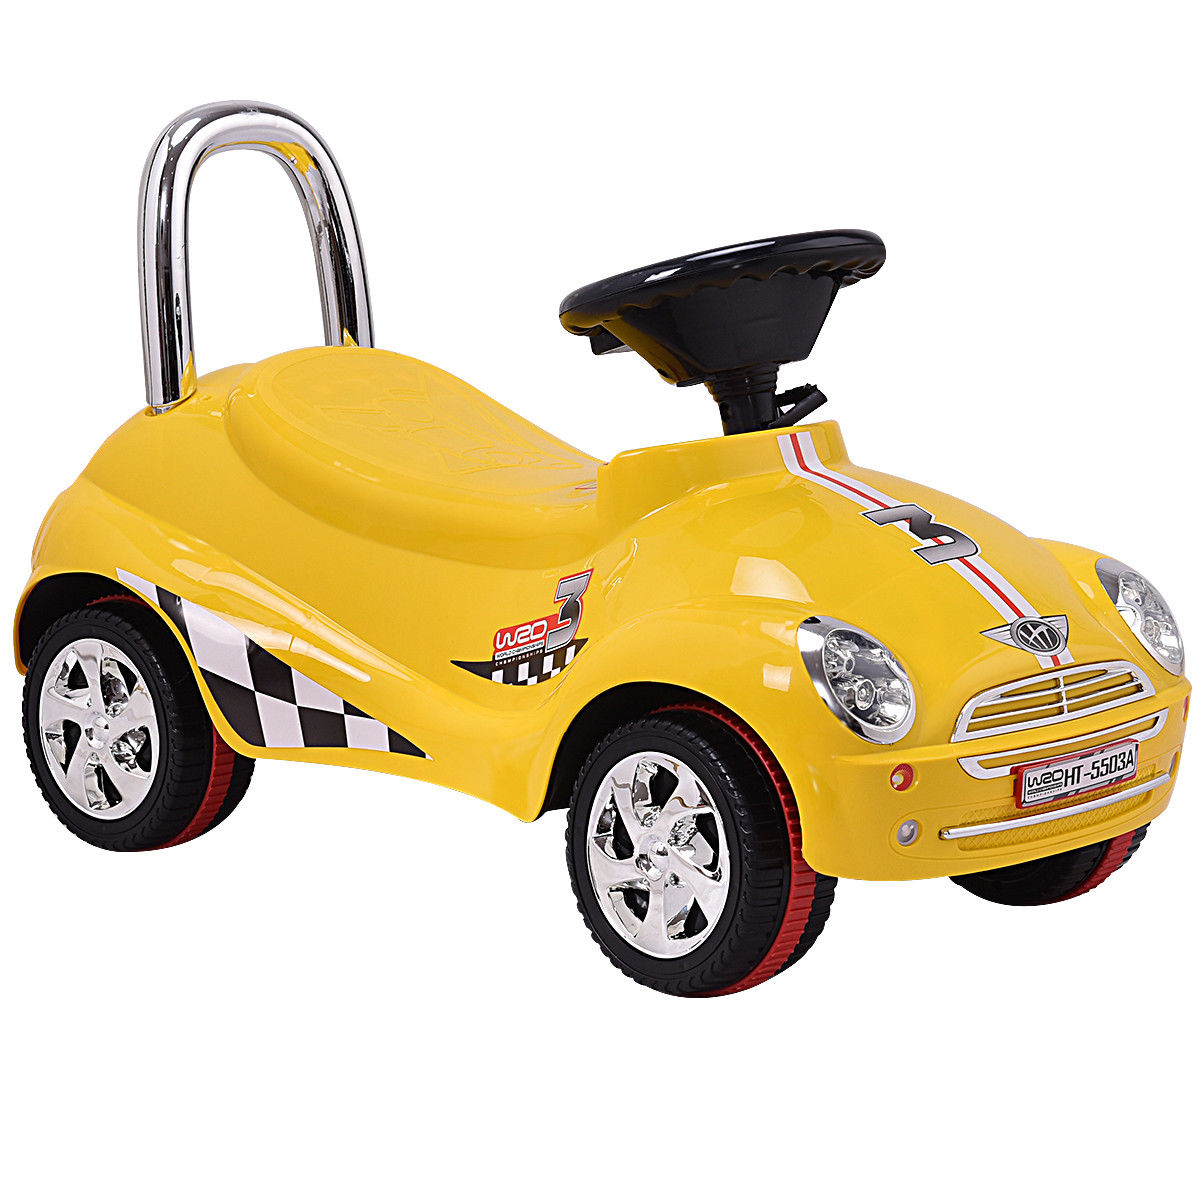 Gymax Kids Ride On Push Car Gliding Scooter Toddler with Sound & Light Christmas Gift by Gymax